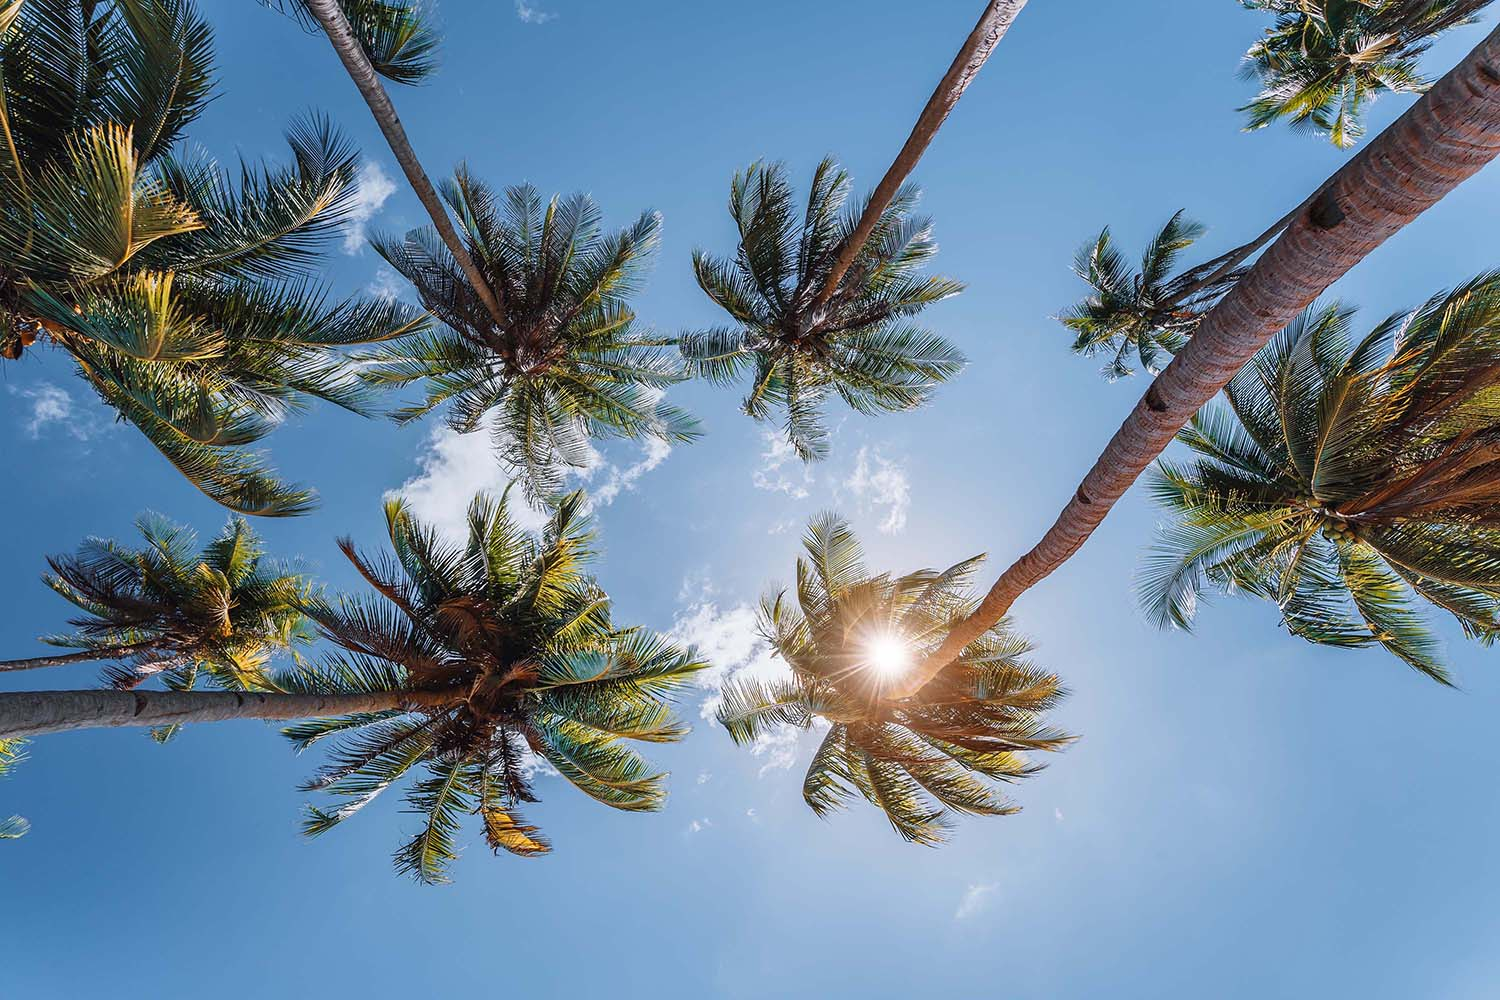 blue-sky-and-top-of-palm-trees-with-sunlight-backg-YULYGFX